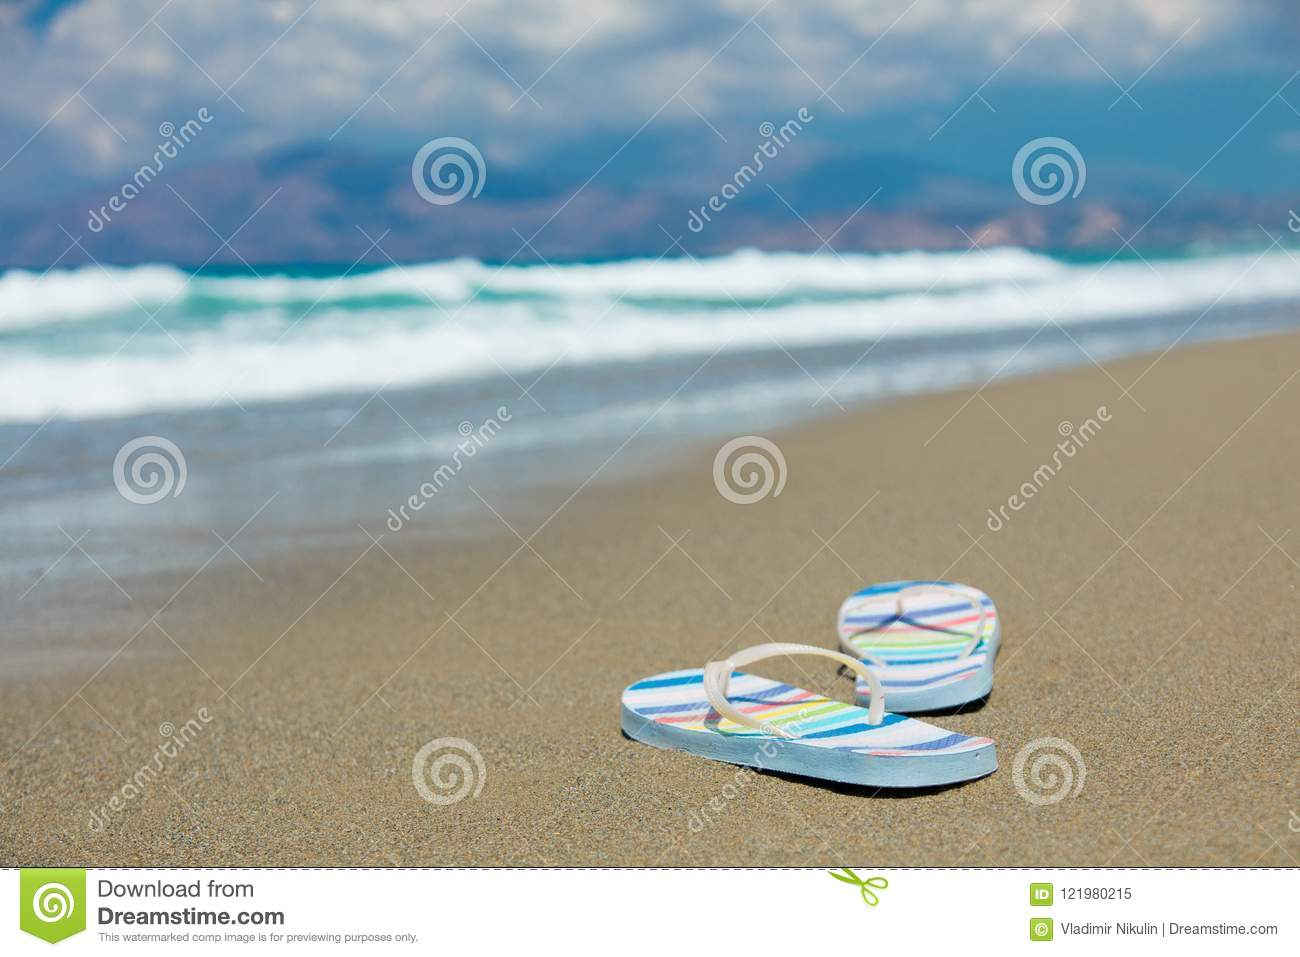 20db86bb0 Colored Sandals On Sand On The Beach Stock Image - Image of greece ...